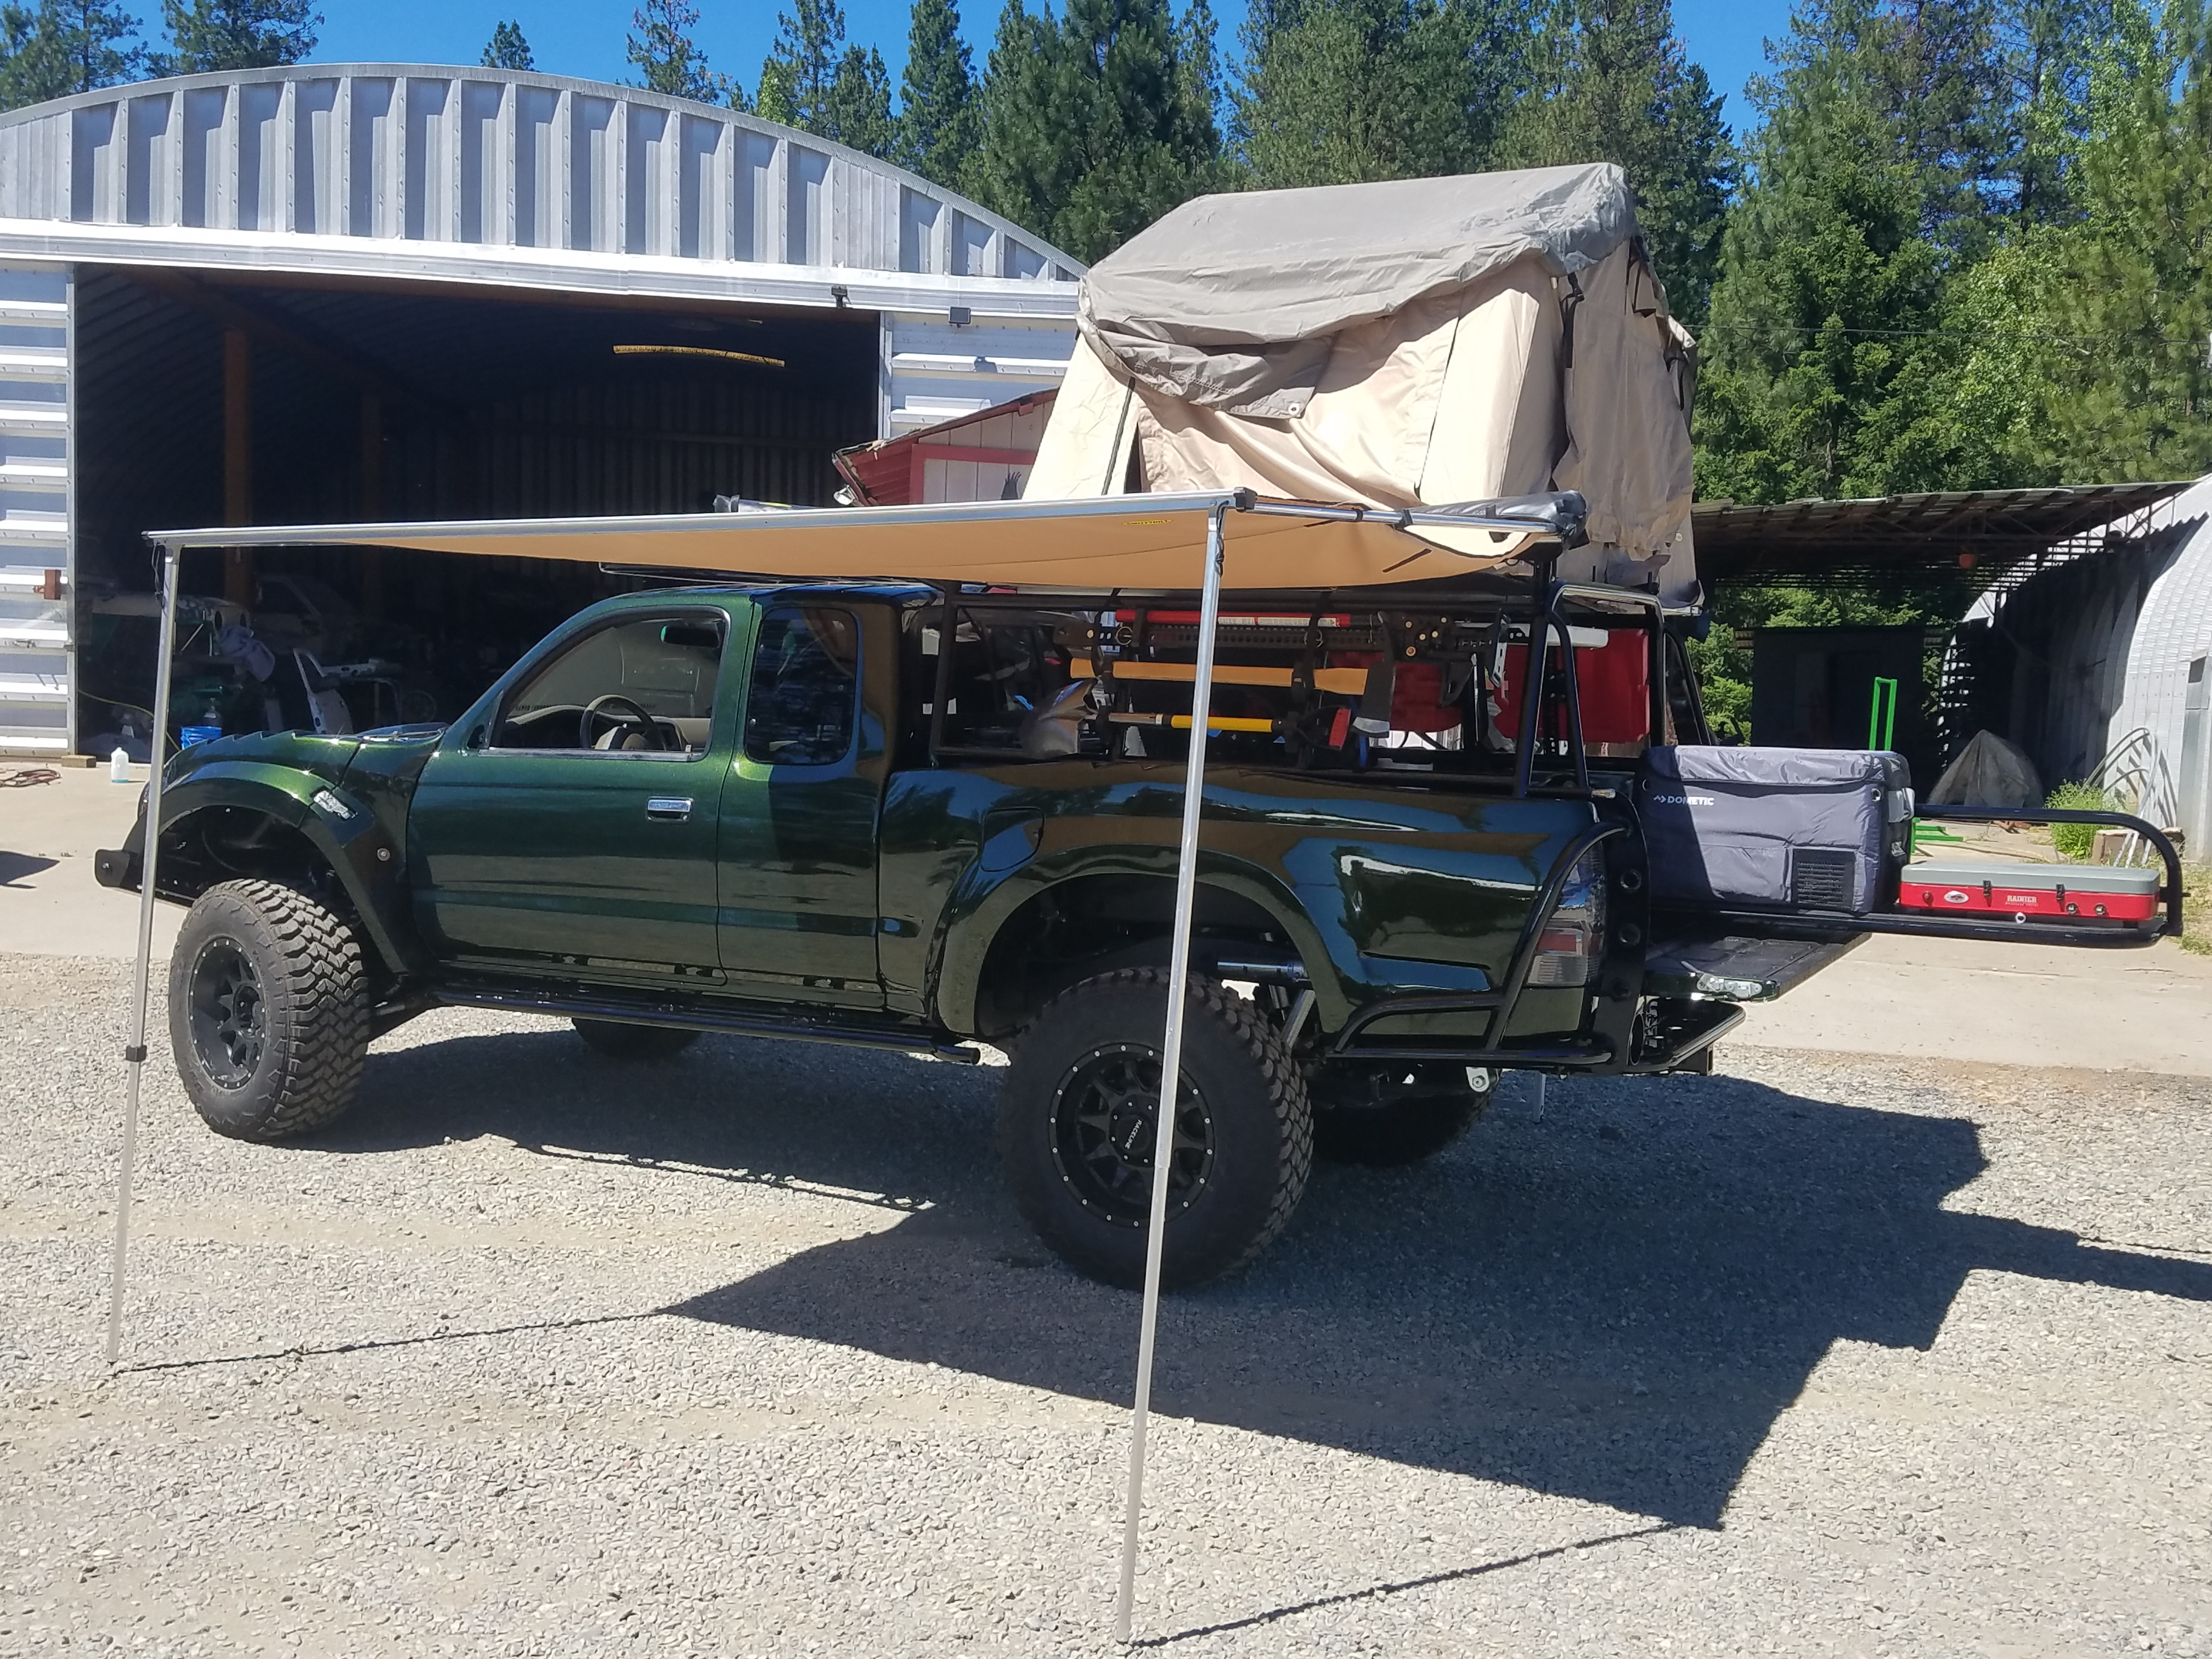 One of a kind tacoma long travel overland build   Expedition